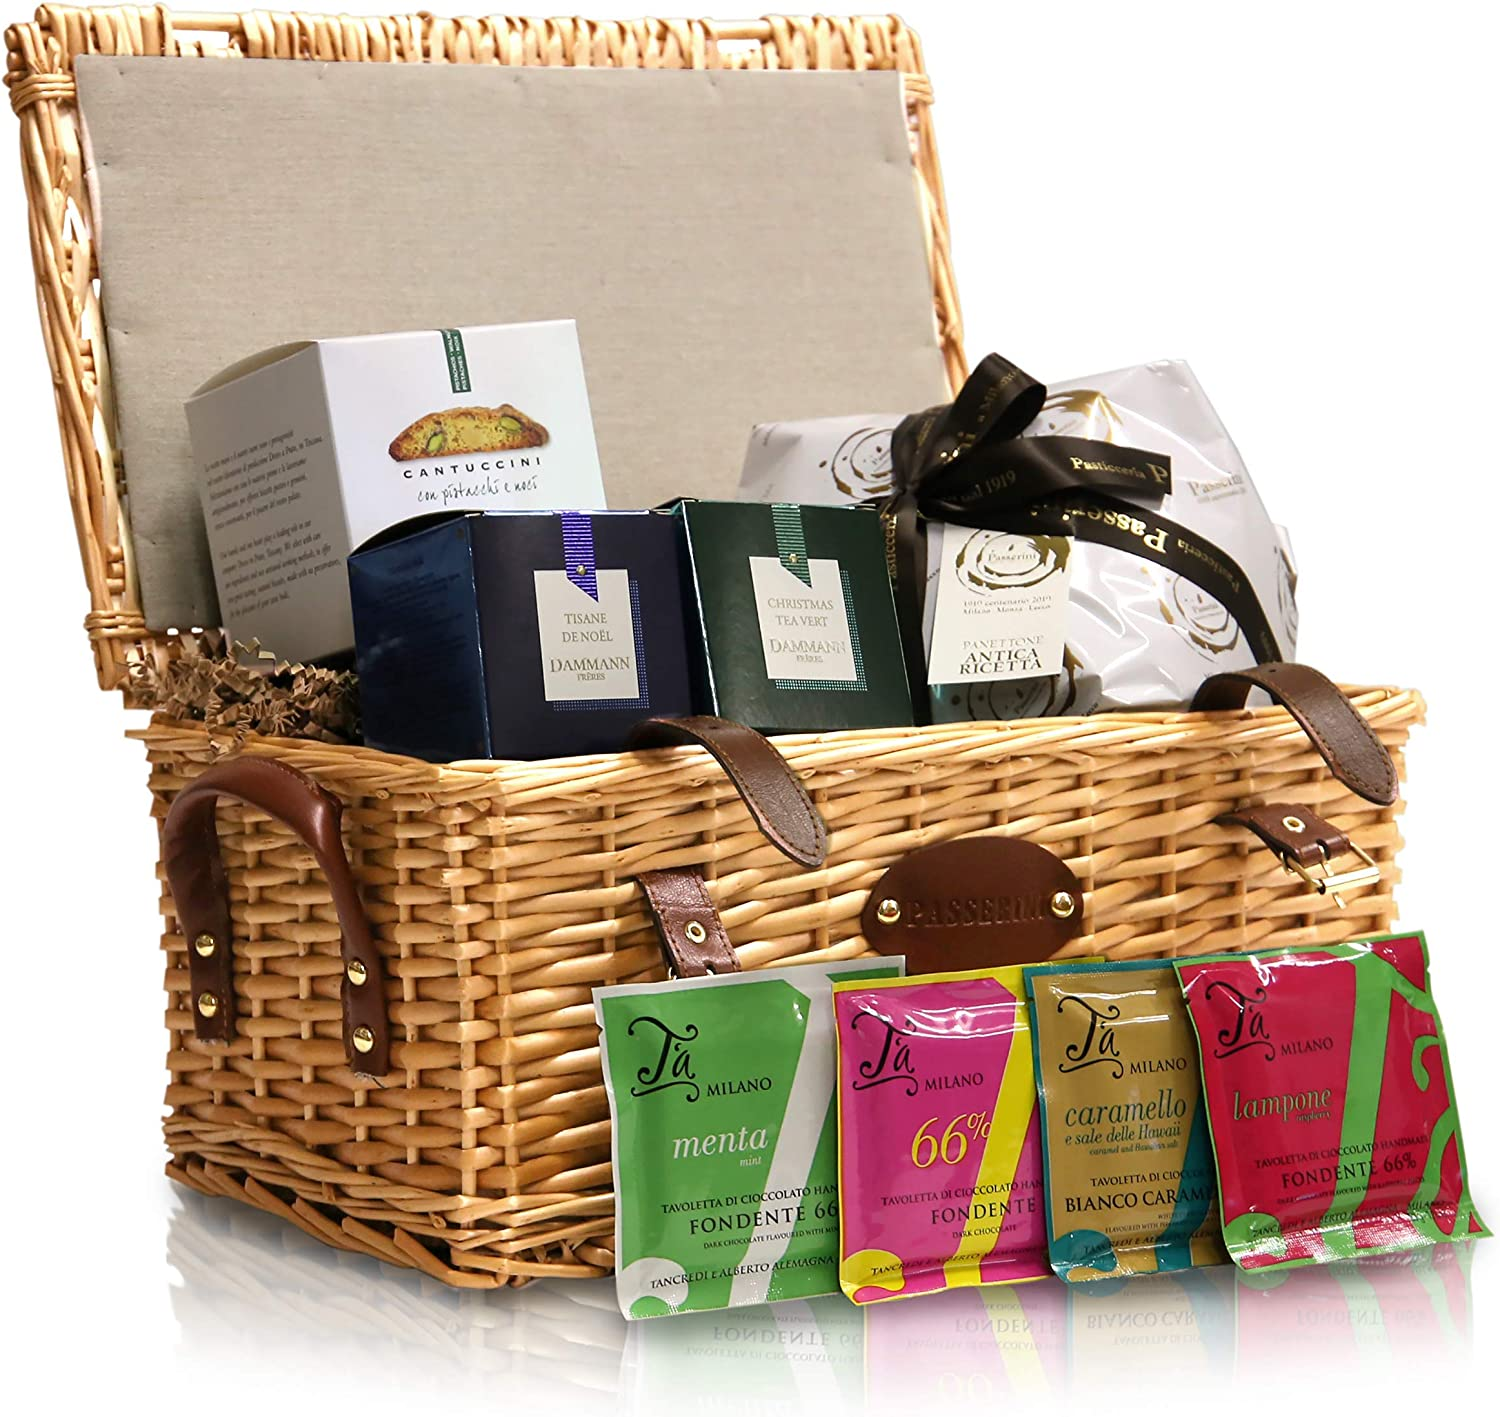 Pasticceria Passerini dal 1919 Christmas Hamper, French & Italian Specialities in Vintage Wicker Basket: Panettone, Chocolate, Cantucci, and Dammann Tea